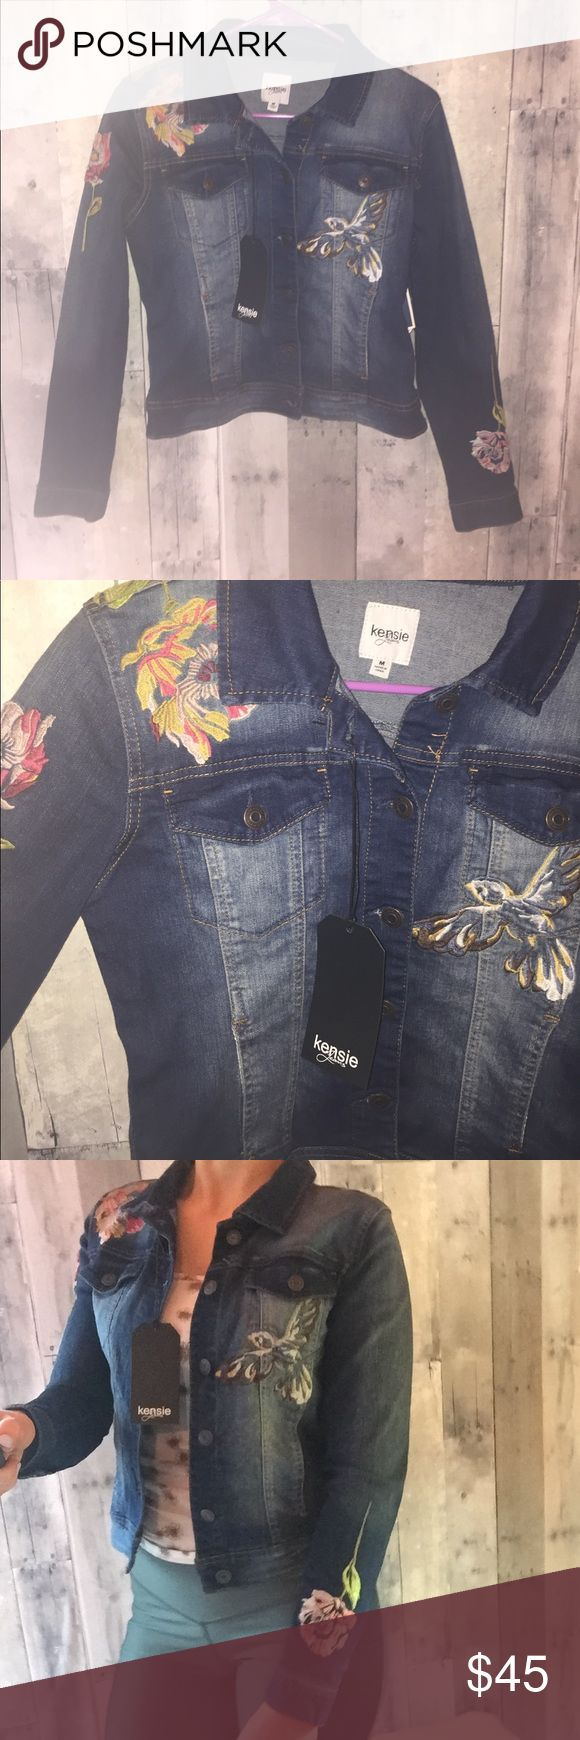 NWT Kensie Jeans brand embroidered denim jacket Gorgeous embroidered jean jacket perfect for fall! In perfect condition and the quality of this piece is amazing. The material is very comfortable and it fits like a true medium. Offers always welcome! :) Jackets & Coats Jean Jackets